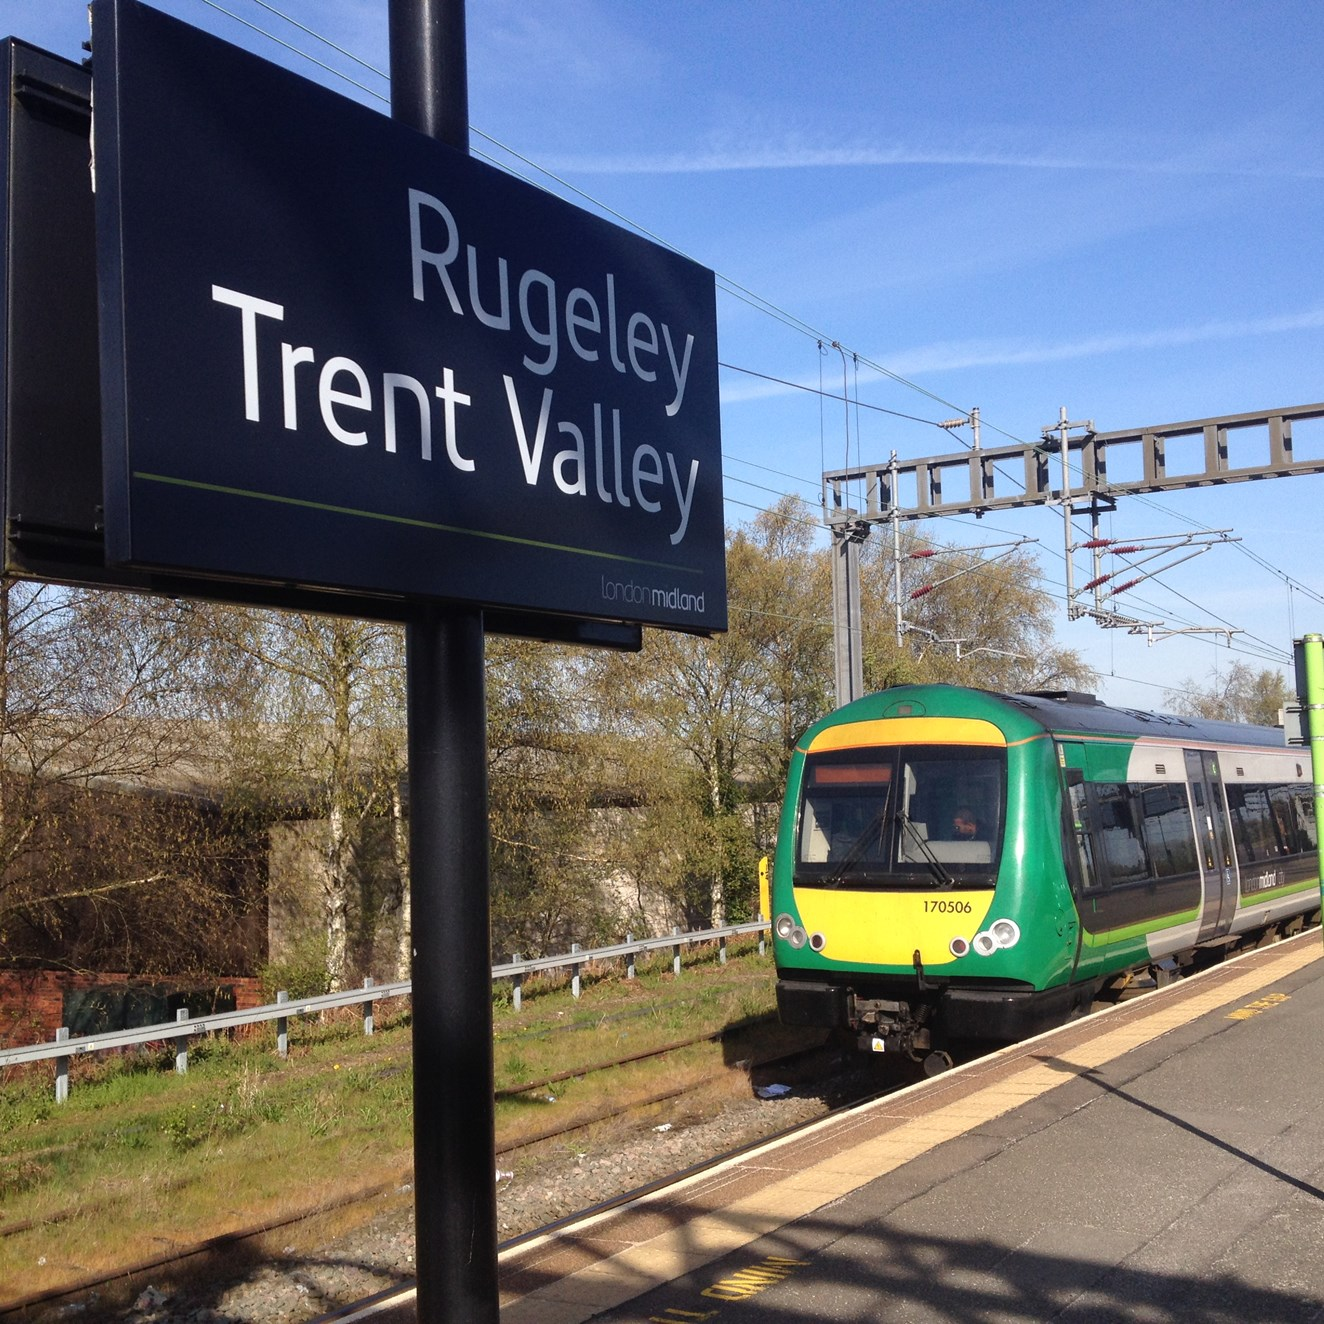 Passengers reminded of 16 day railway closure between Rugeley Trent Valley and Walsall as electrification gathers pace: Rugeley Trent Valley - Chase line electrification